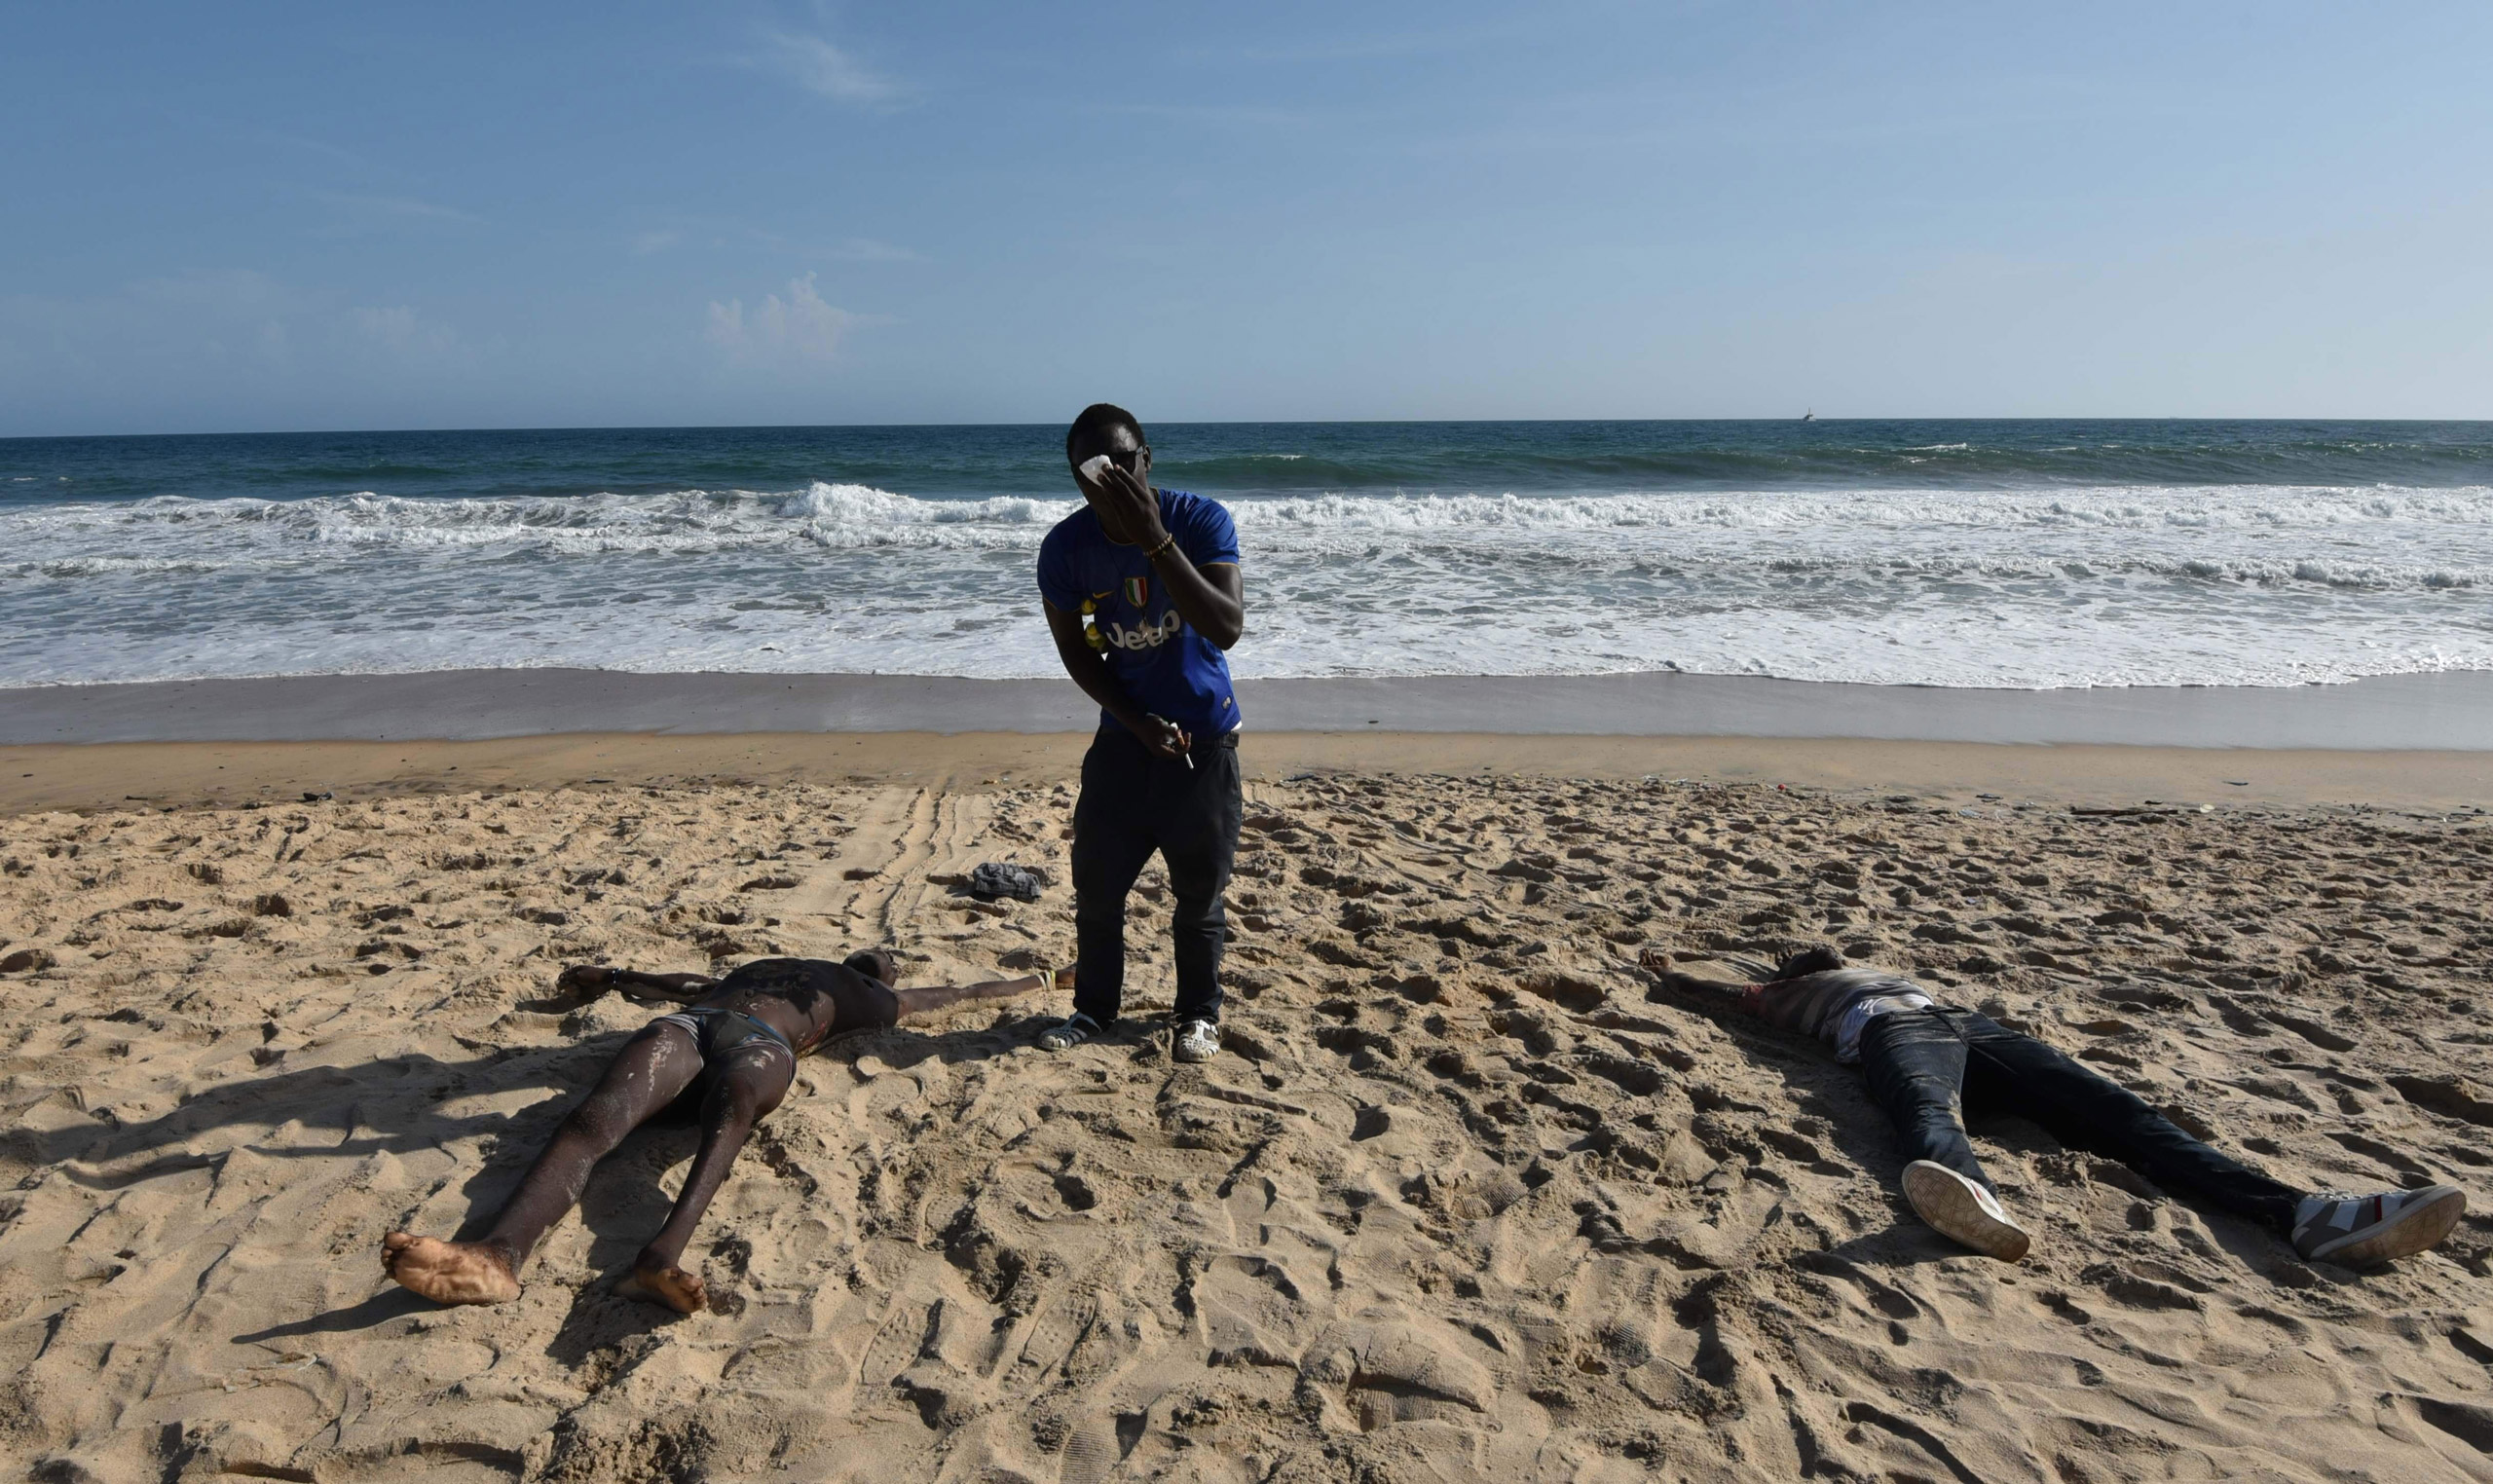 Bodies are seen on a beach after heavily armed gunmen opened fire at a beach resort in Grand-Bassam, Ivory Coast, on March 13, 2016.